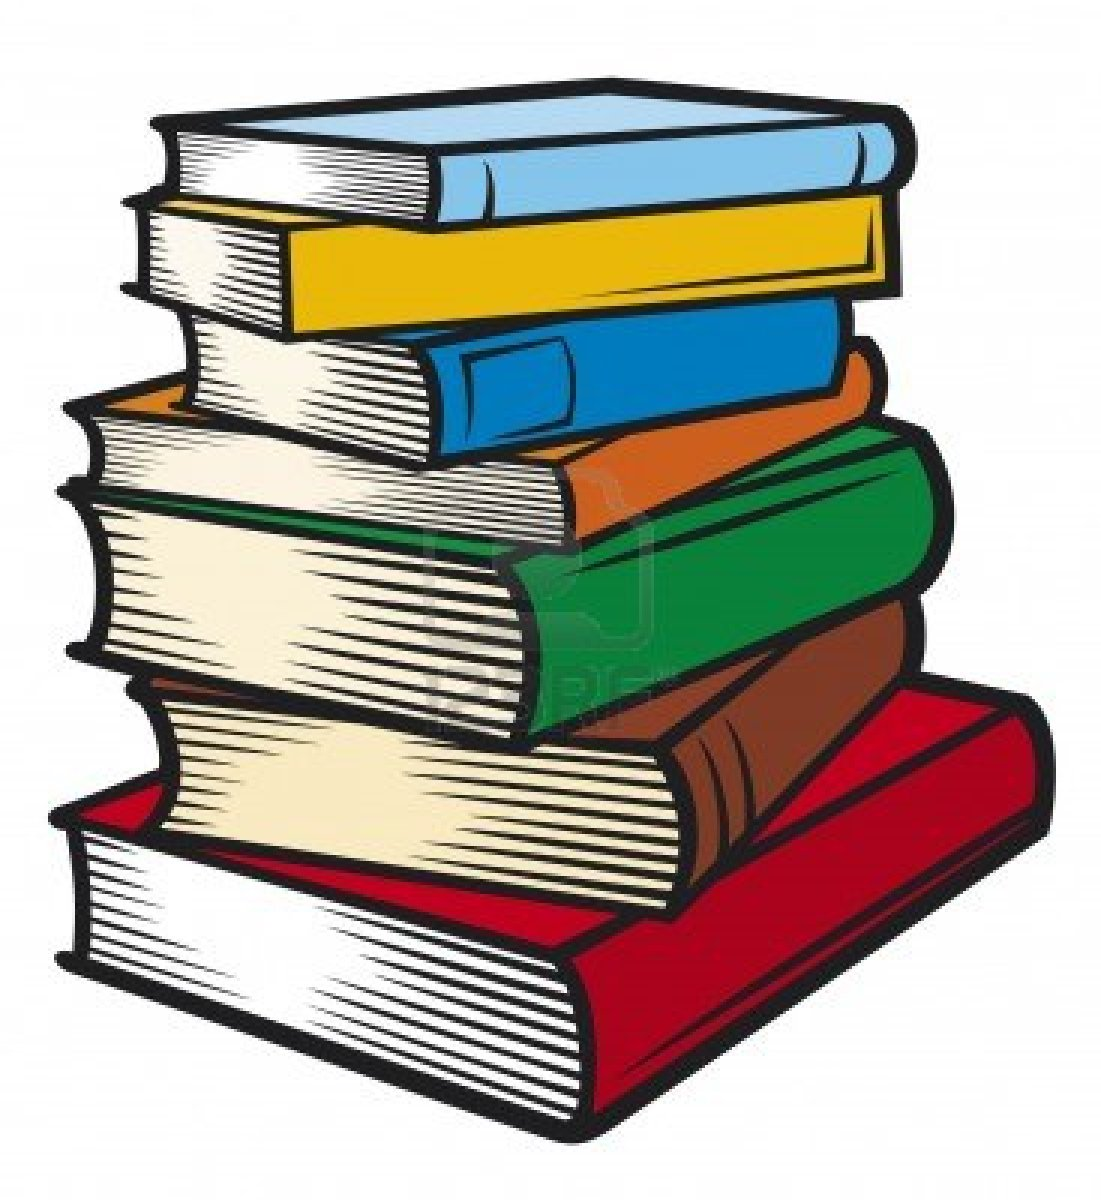 Free Textbooks Cliparts, Download Free Clip Art, Free Clip